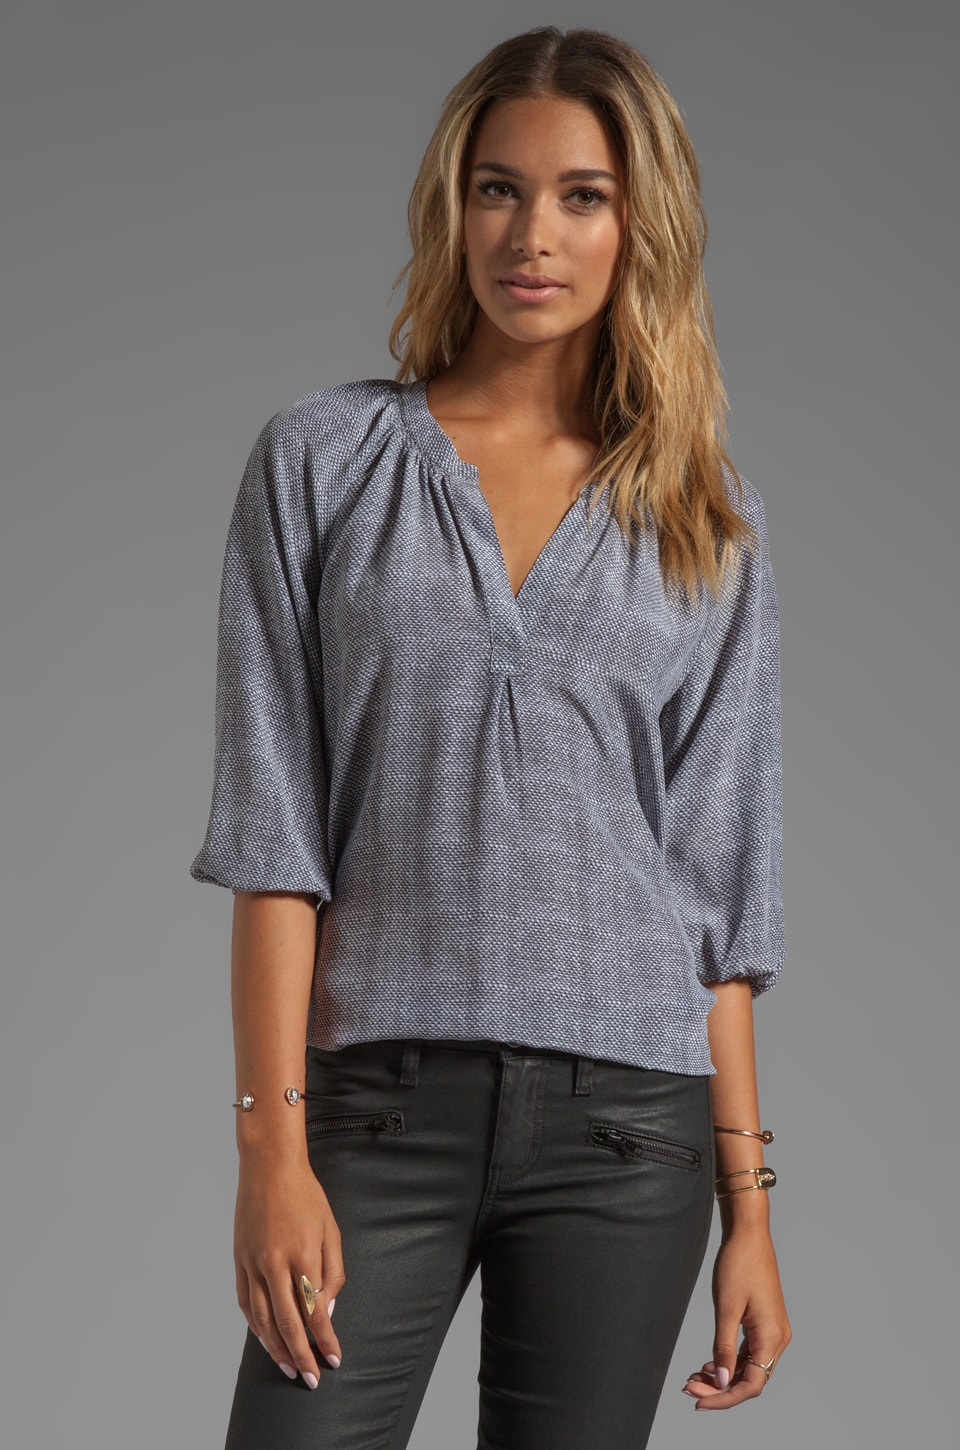 Joie Textural Print Addie B Blouse in Bluestone